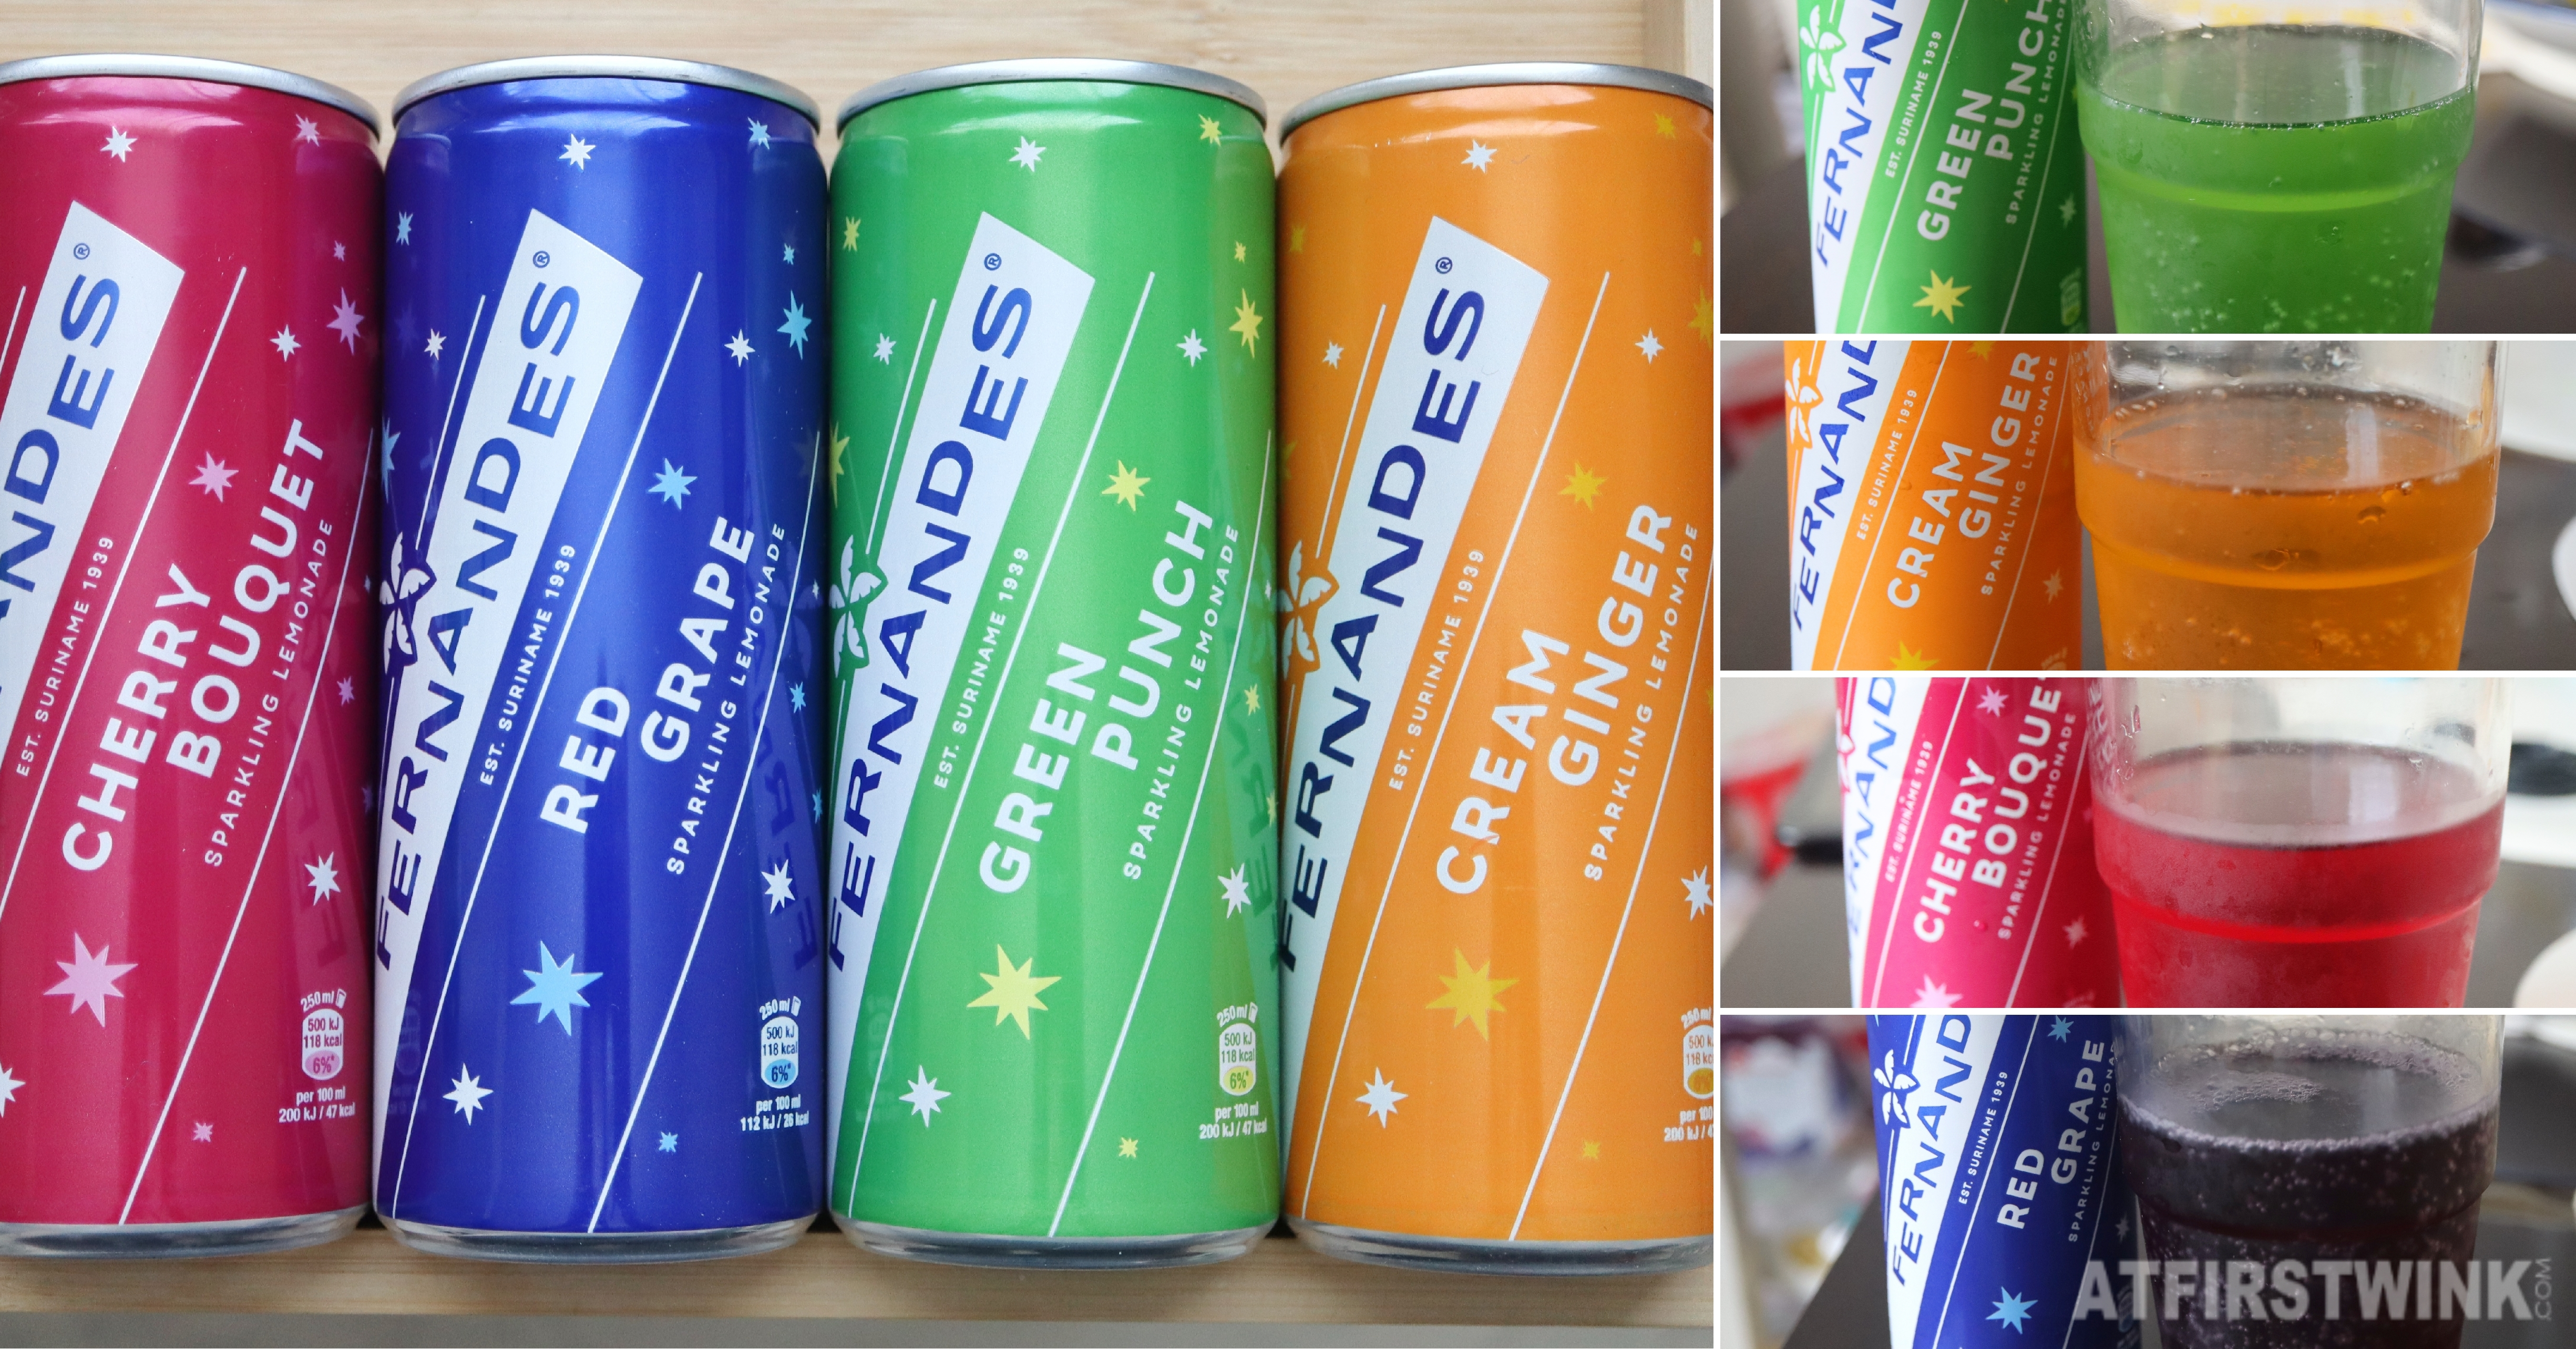 Review Fernandes soda cherry bouquet, green punch, red grape, and cream ginger